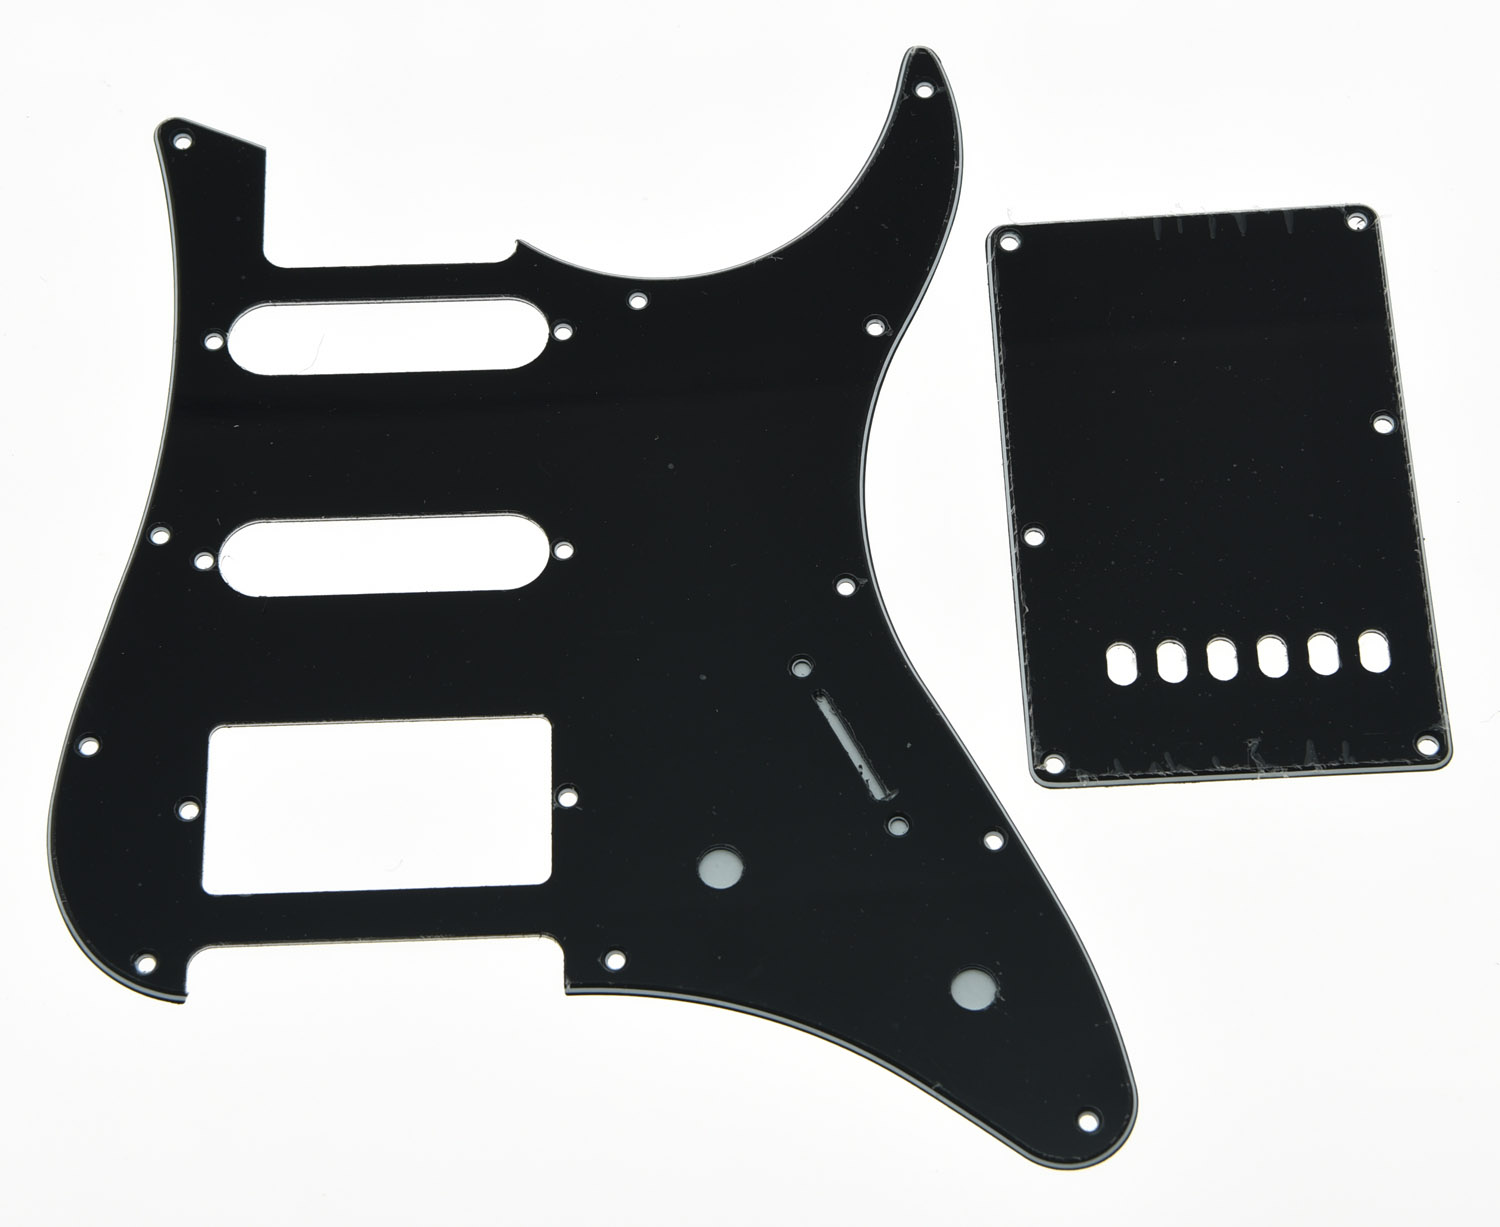 Black 3 Ply Guitar Pickguard w/ Back Plate and Screws fits Yamaha PACIFICA